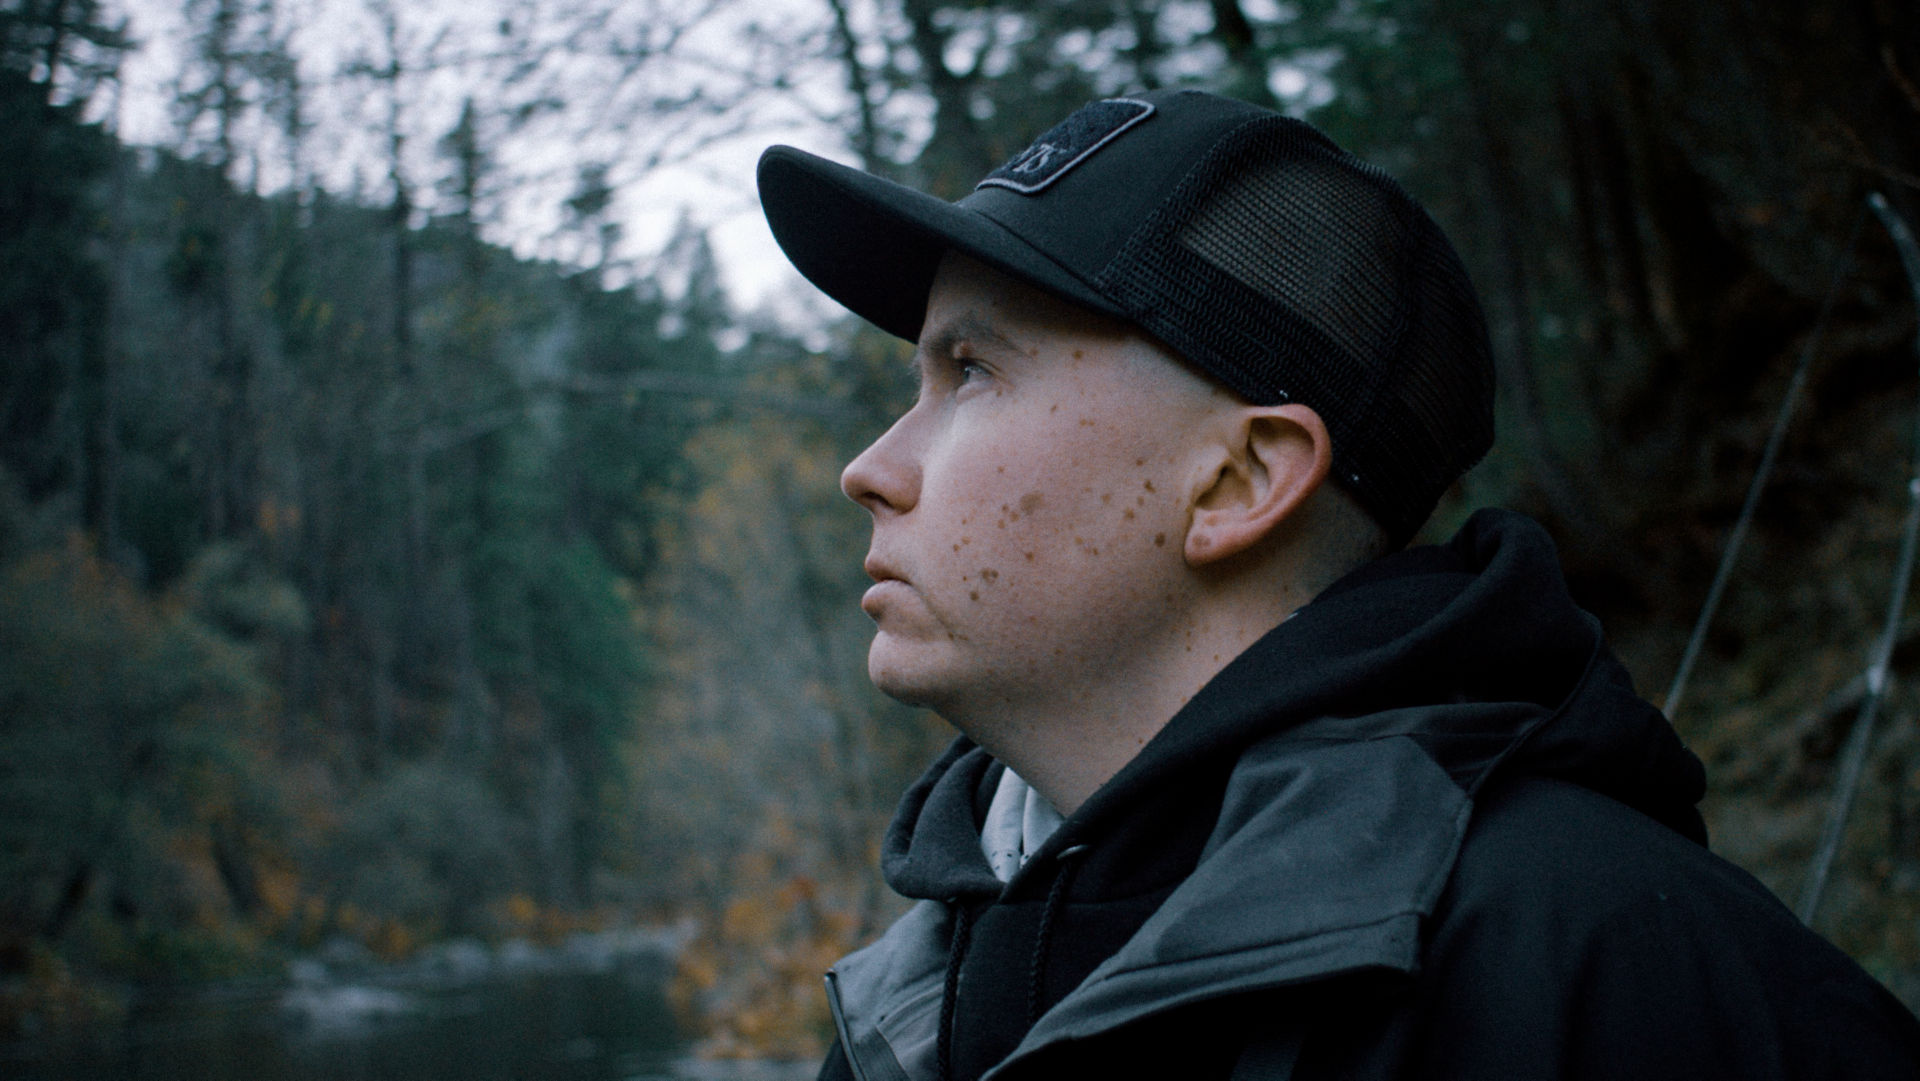 Profile picture of Paul next to a river.